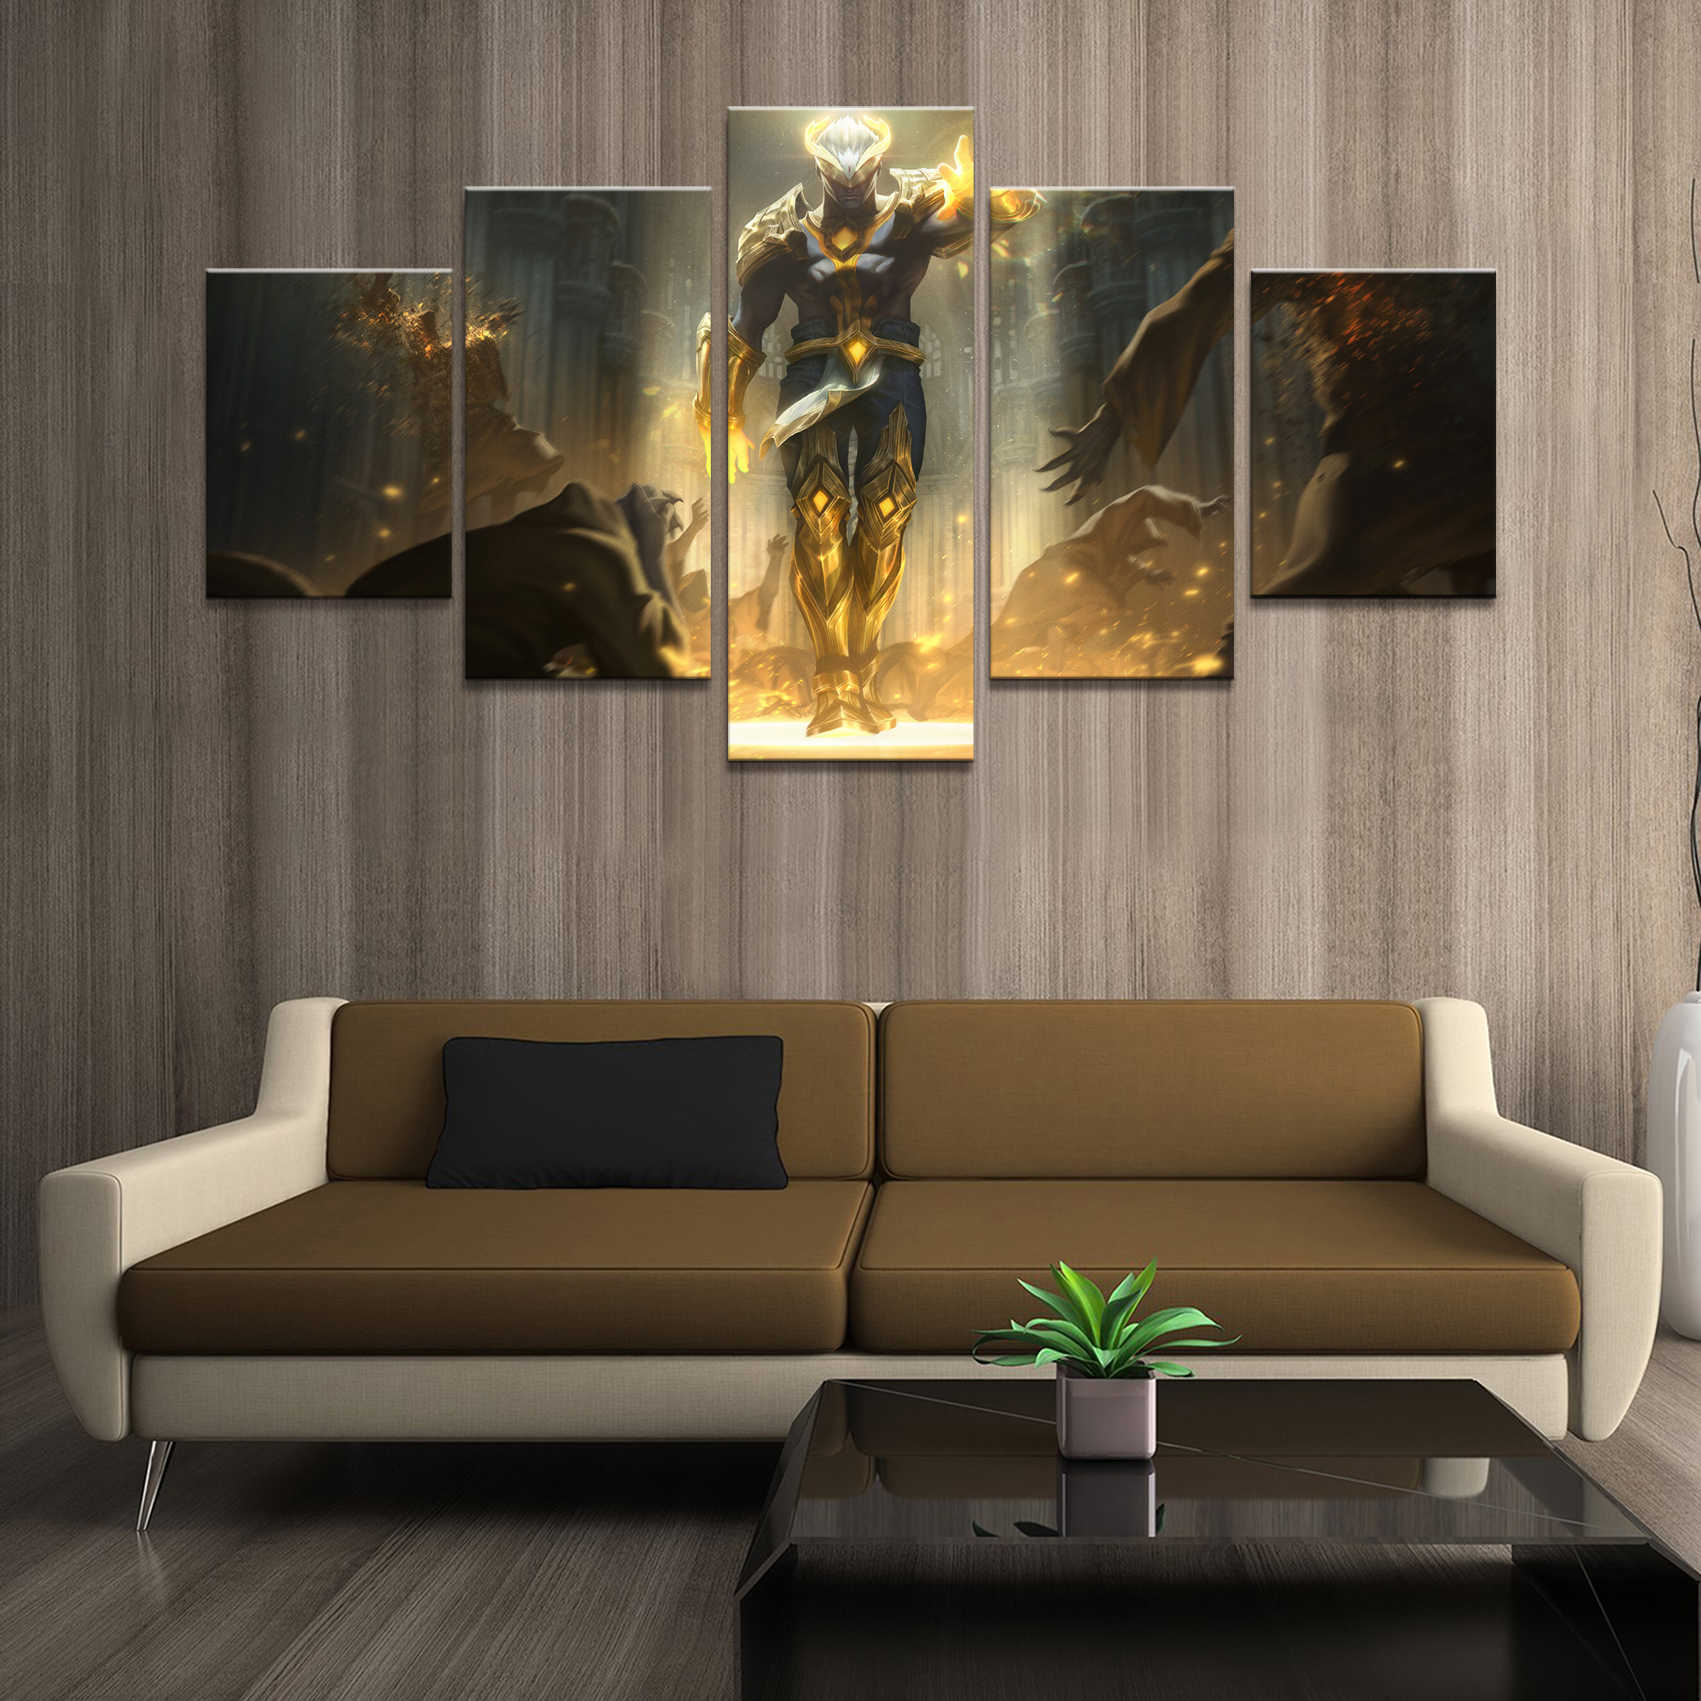 Home Decor Poster Pictures Prints Canvas 5 Piece Modular LOL League of Legends Brand Game HD Art Living Room Decorative Paintin